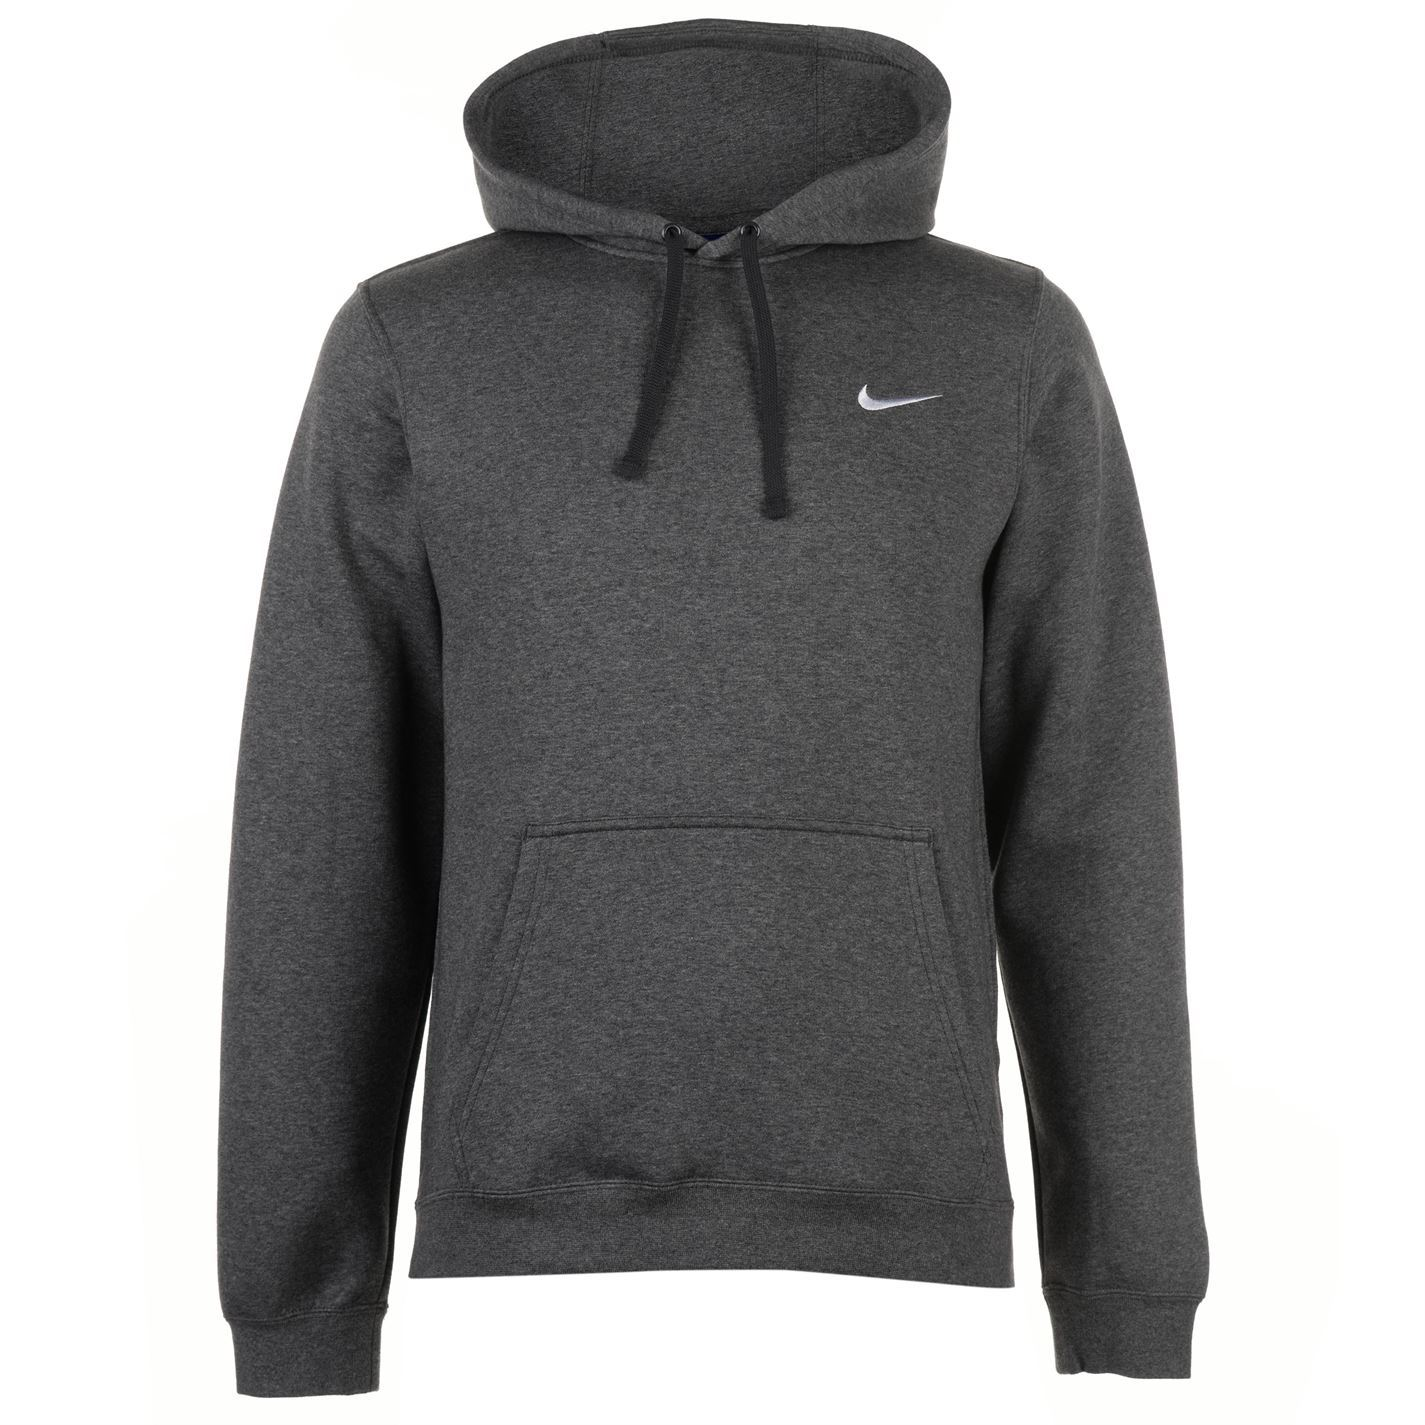 258a184c35fa ... Nike Fundamentals Fleece Lined Pullover Hoody Mens OTH Hoodie Sweatshirt  Sweater